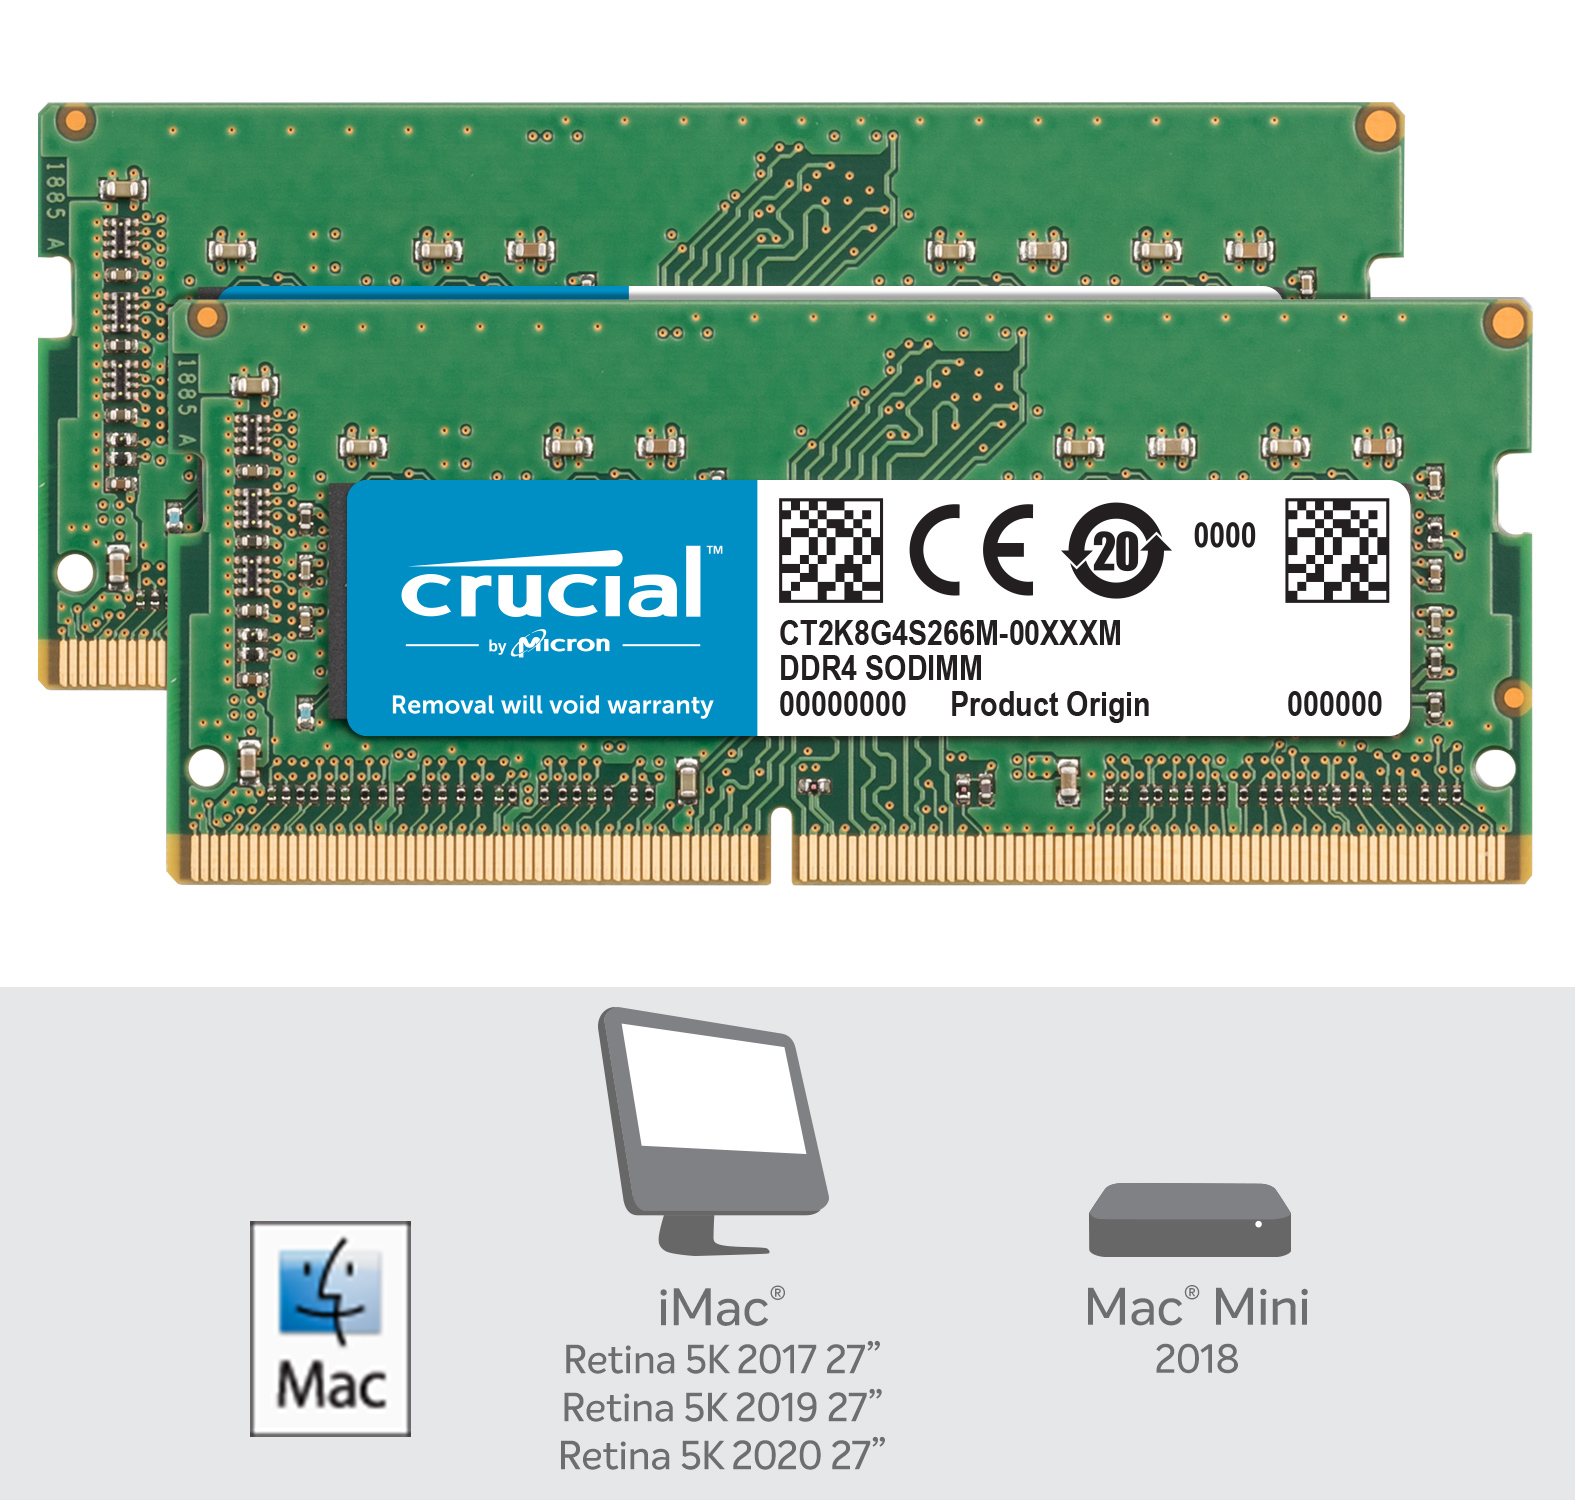 Crucial 16GB Kit (2 x 8GB) DDR4-2666 SODIMM Memory for Mac- view 2